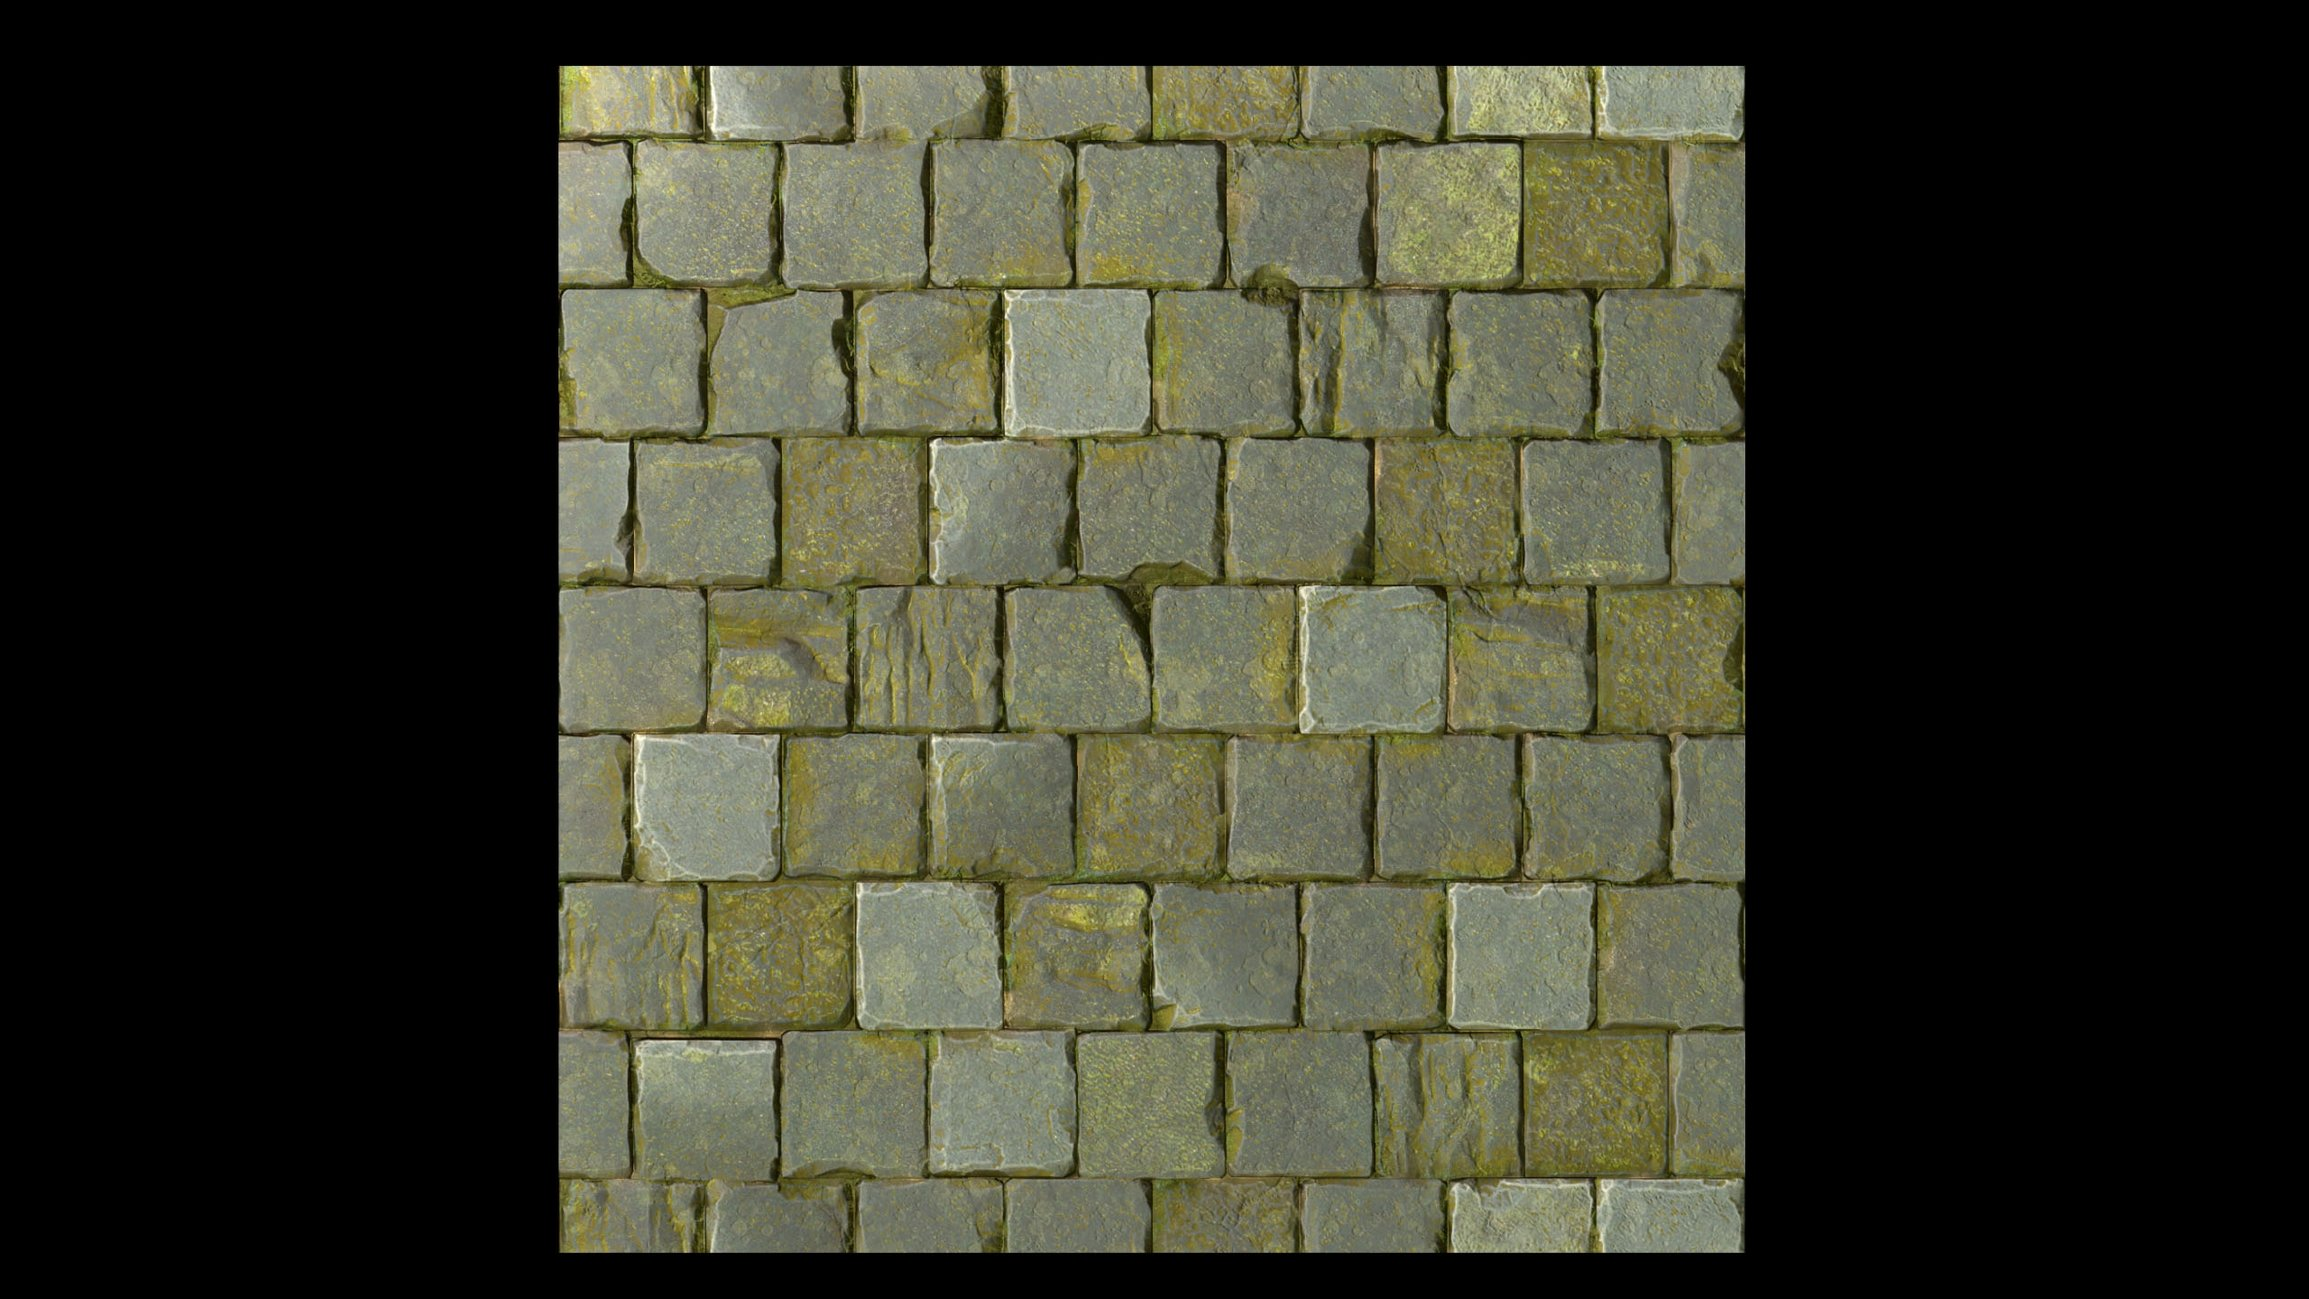 Unfinished brick wall texture for creating environment texture maps - Final_1 Jpg 482 5k